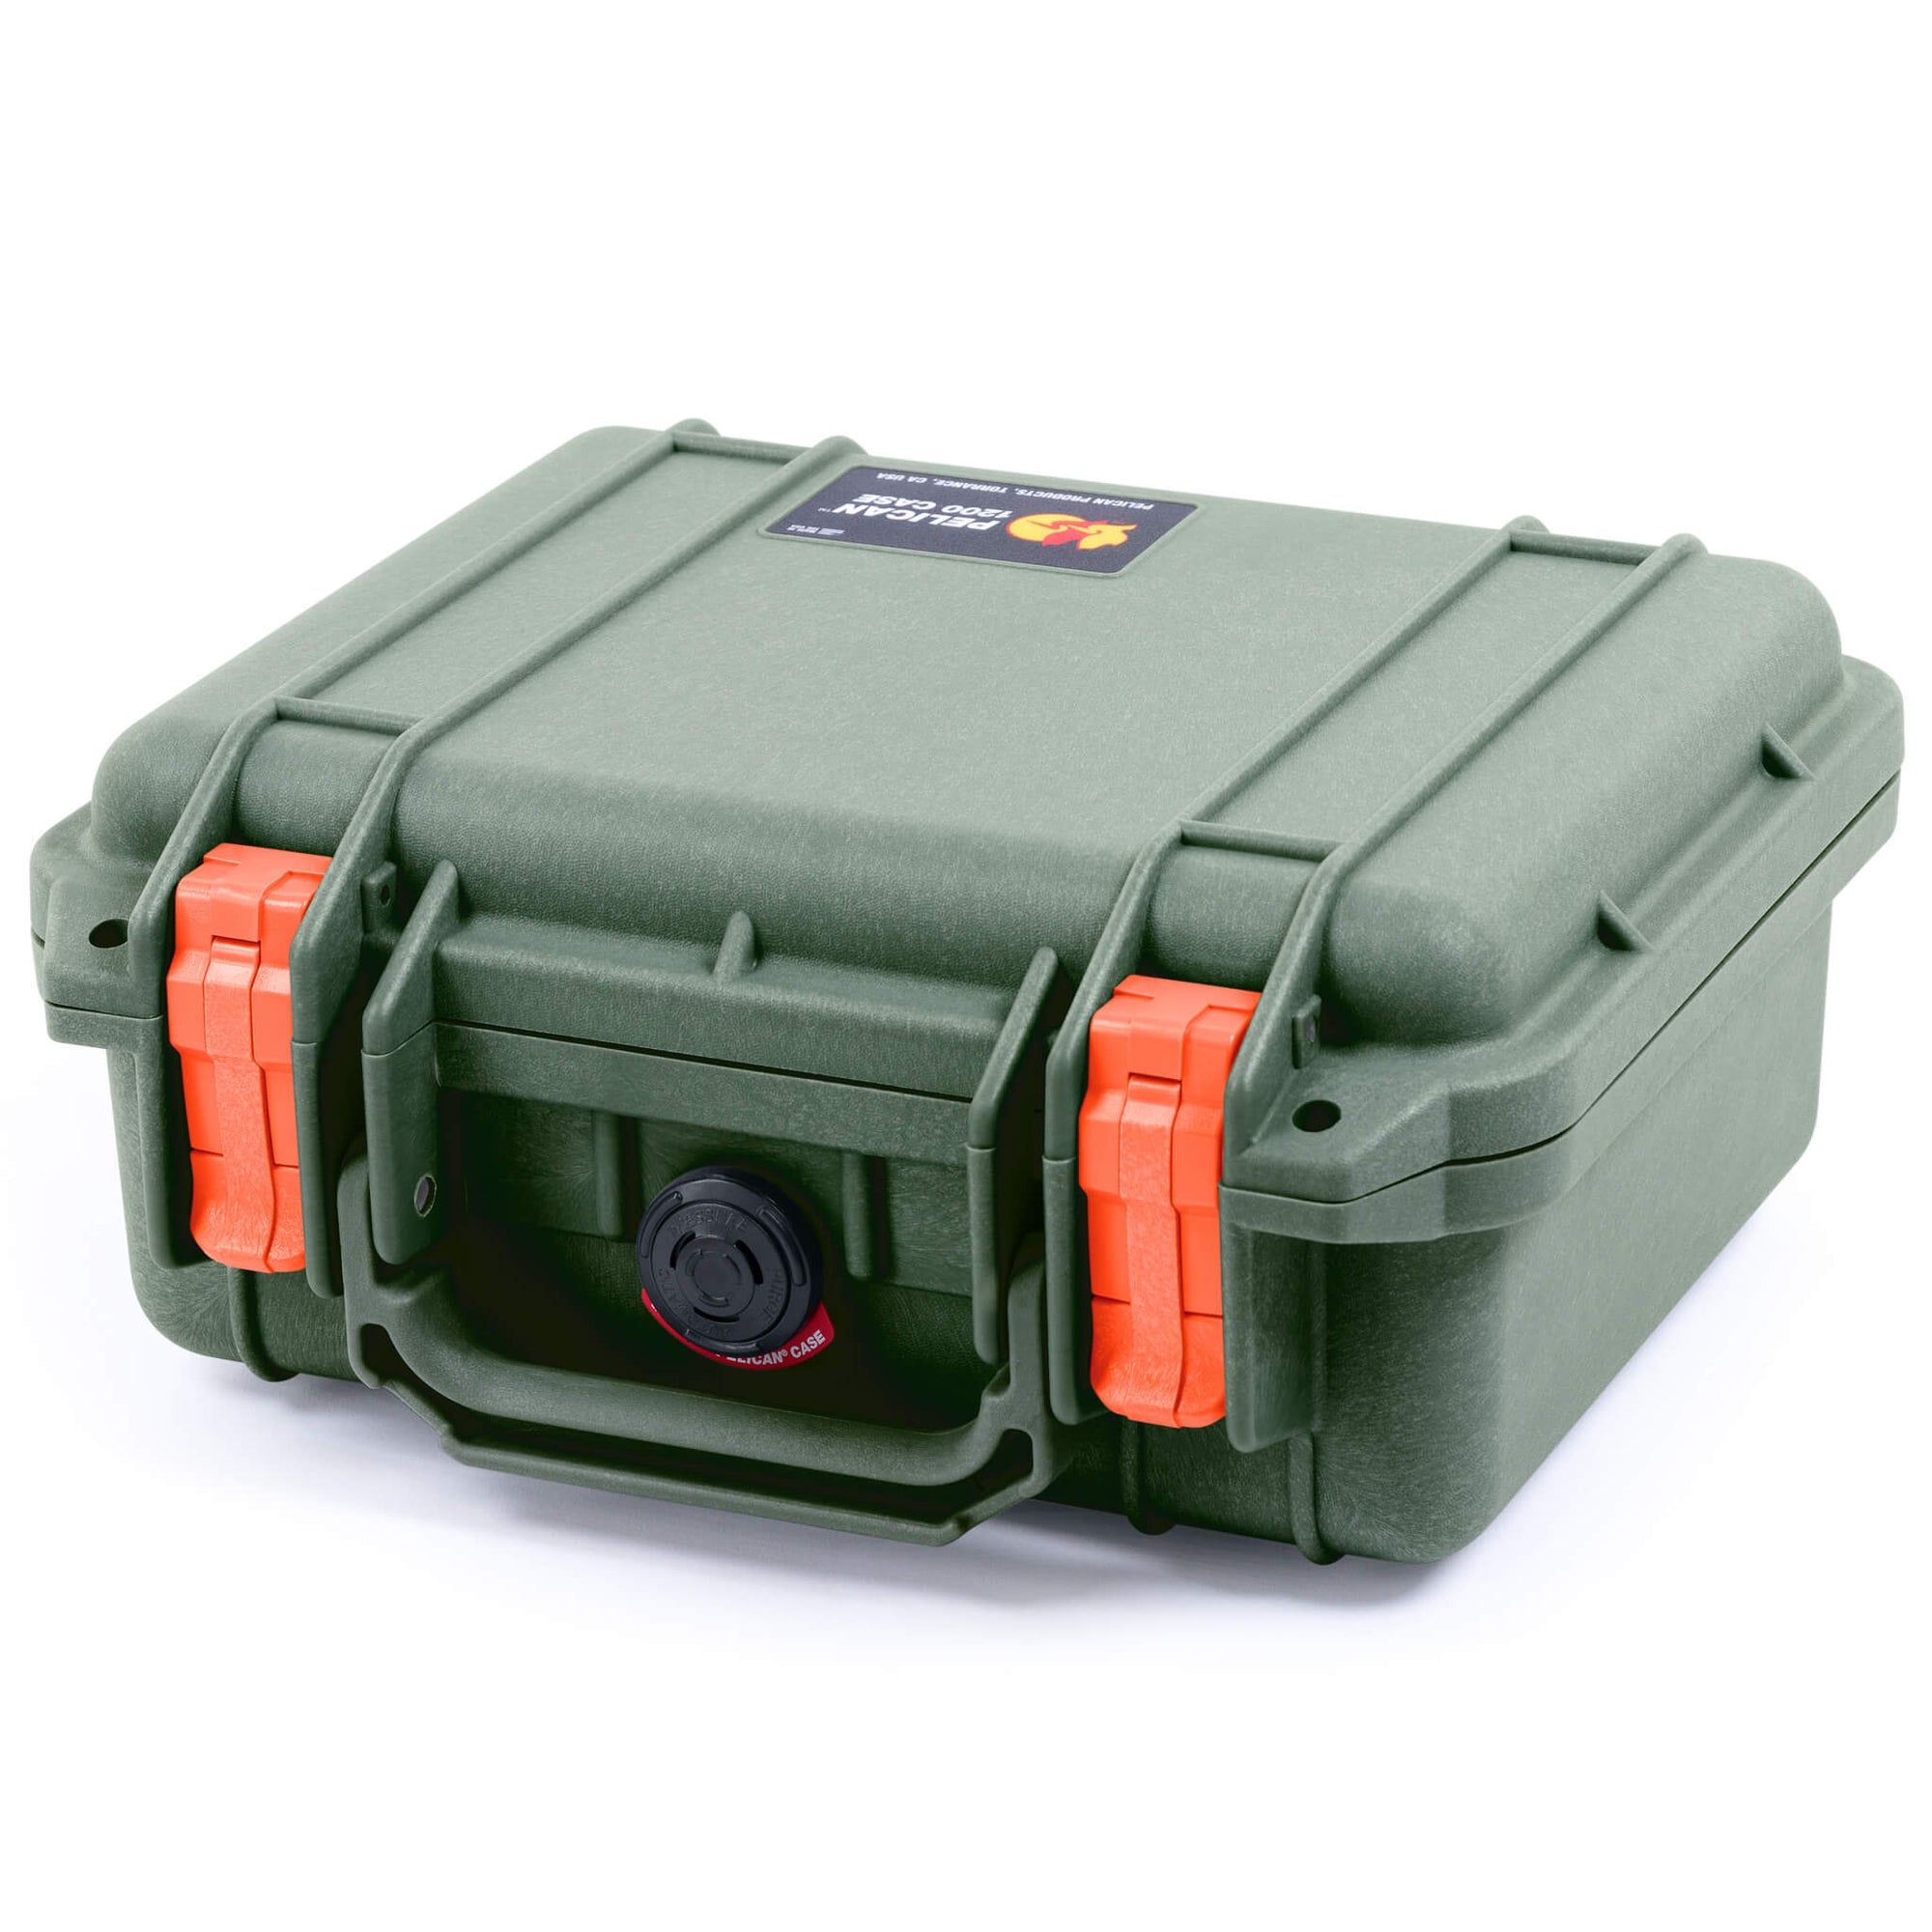 Pelican 1200 Case, OD Green with Orange Handle & Latches